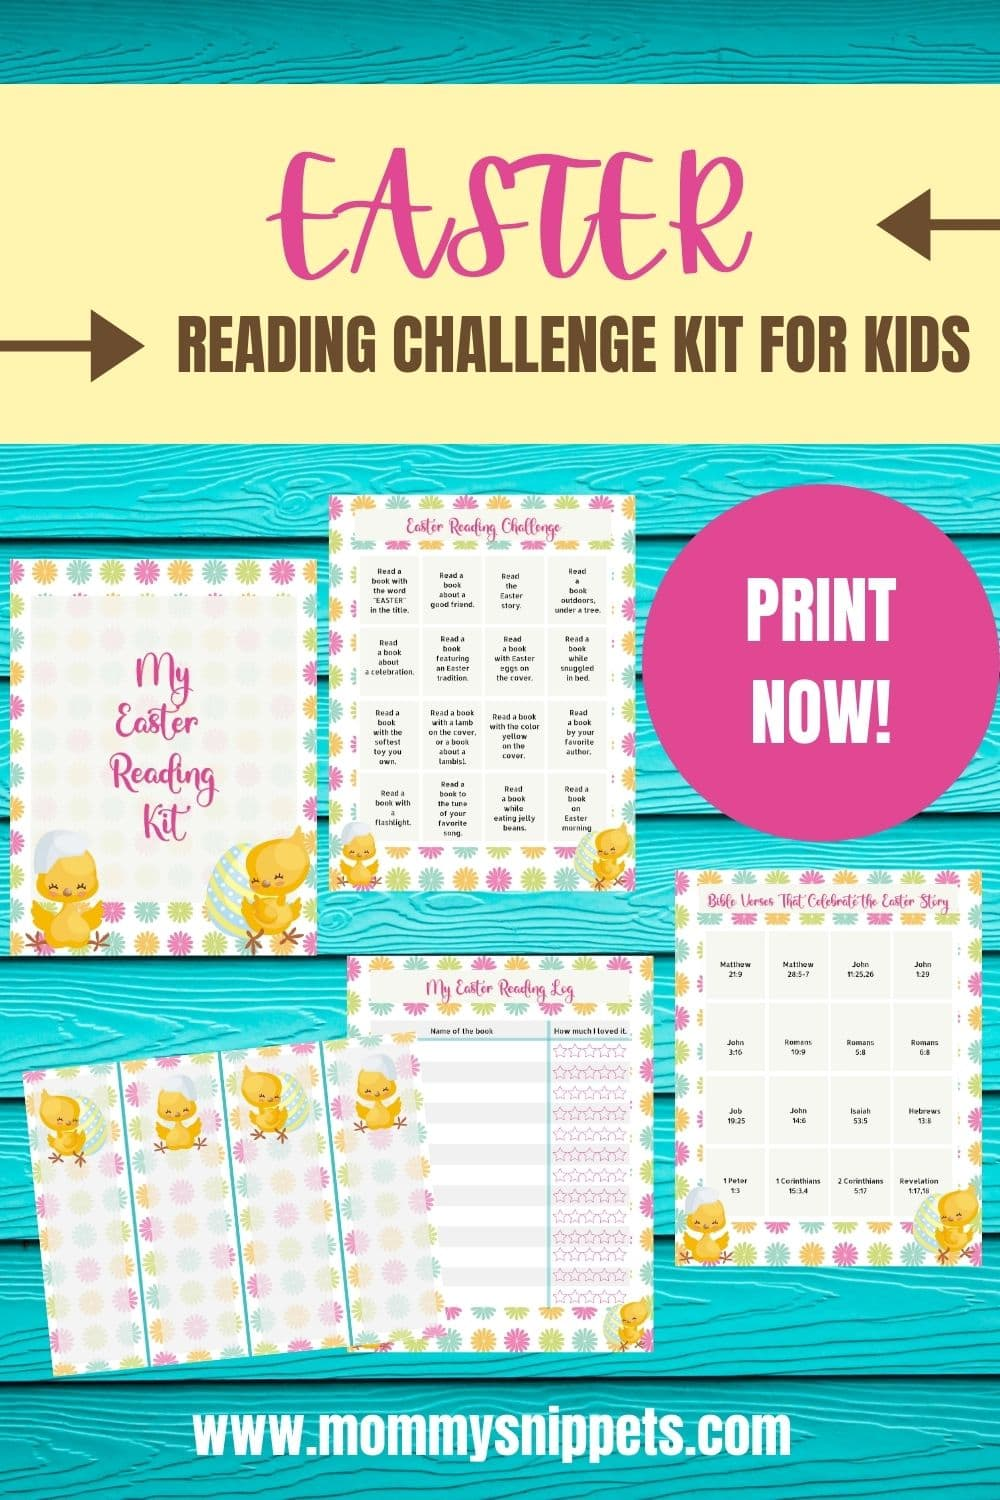 Easter Reading Becomes a Lot More Fun With This Reading Challenge Kit!